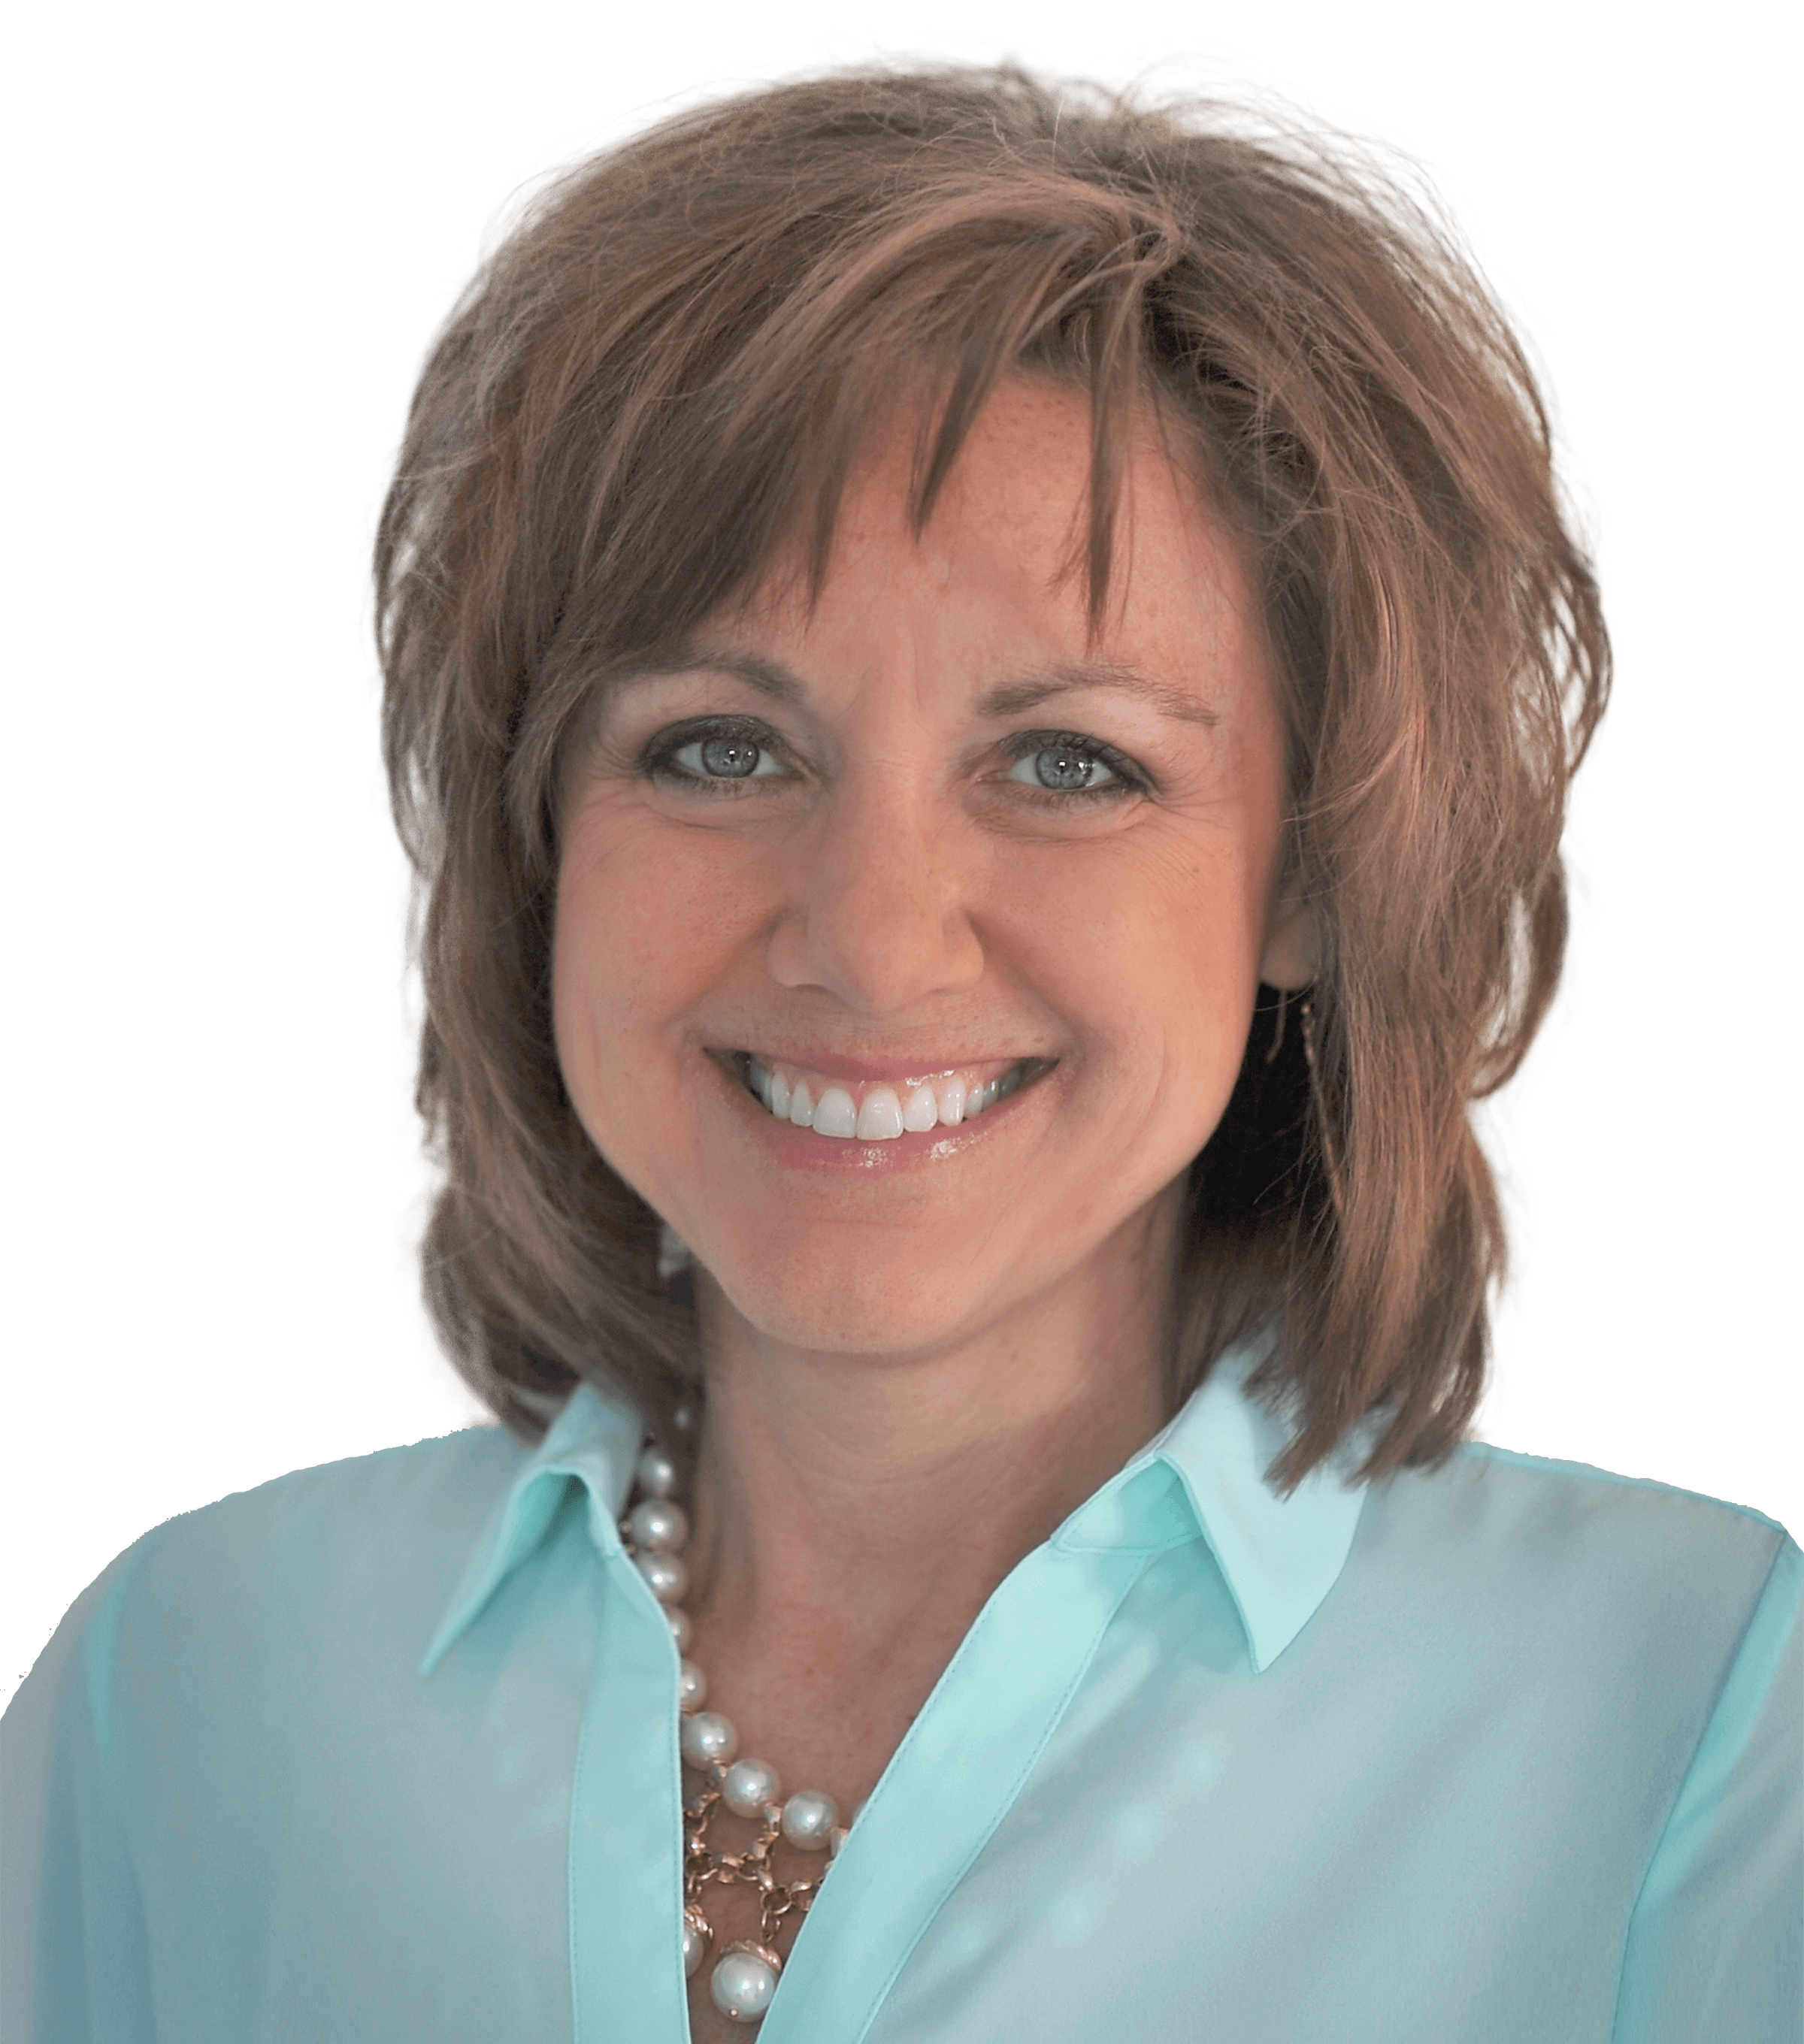 Pipes Insurance Service Team: Janet Pipes, Agency Accounting and Billing